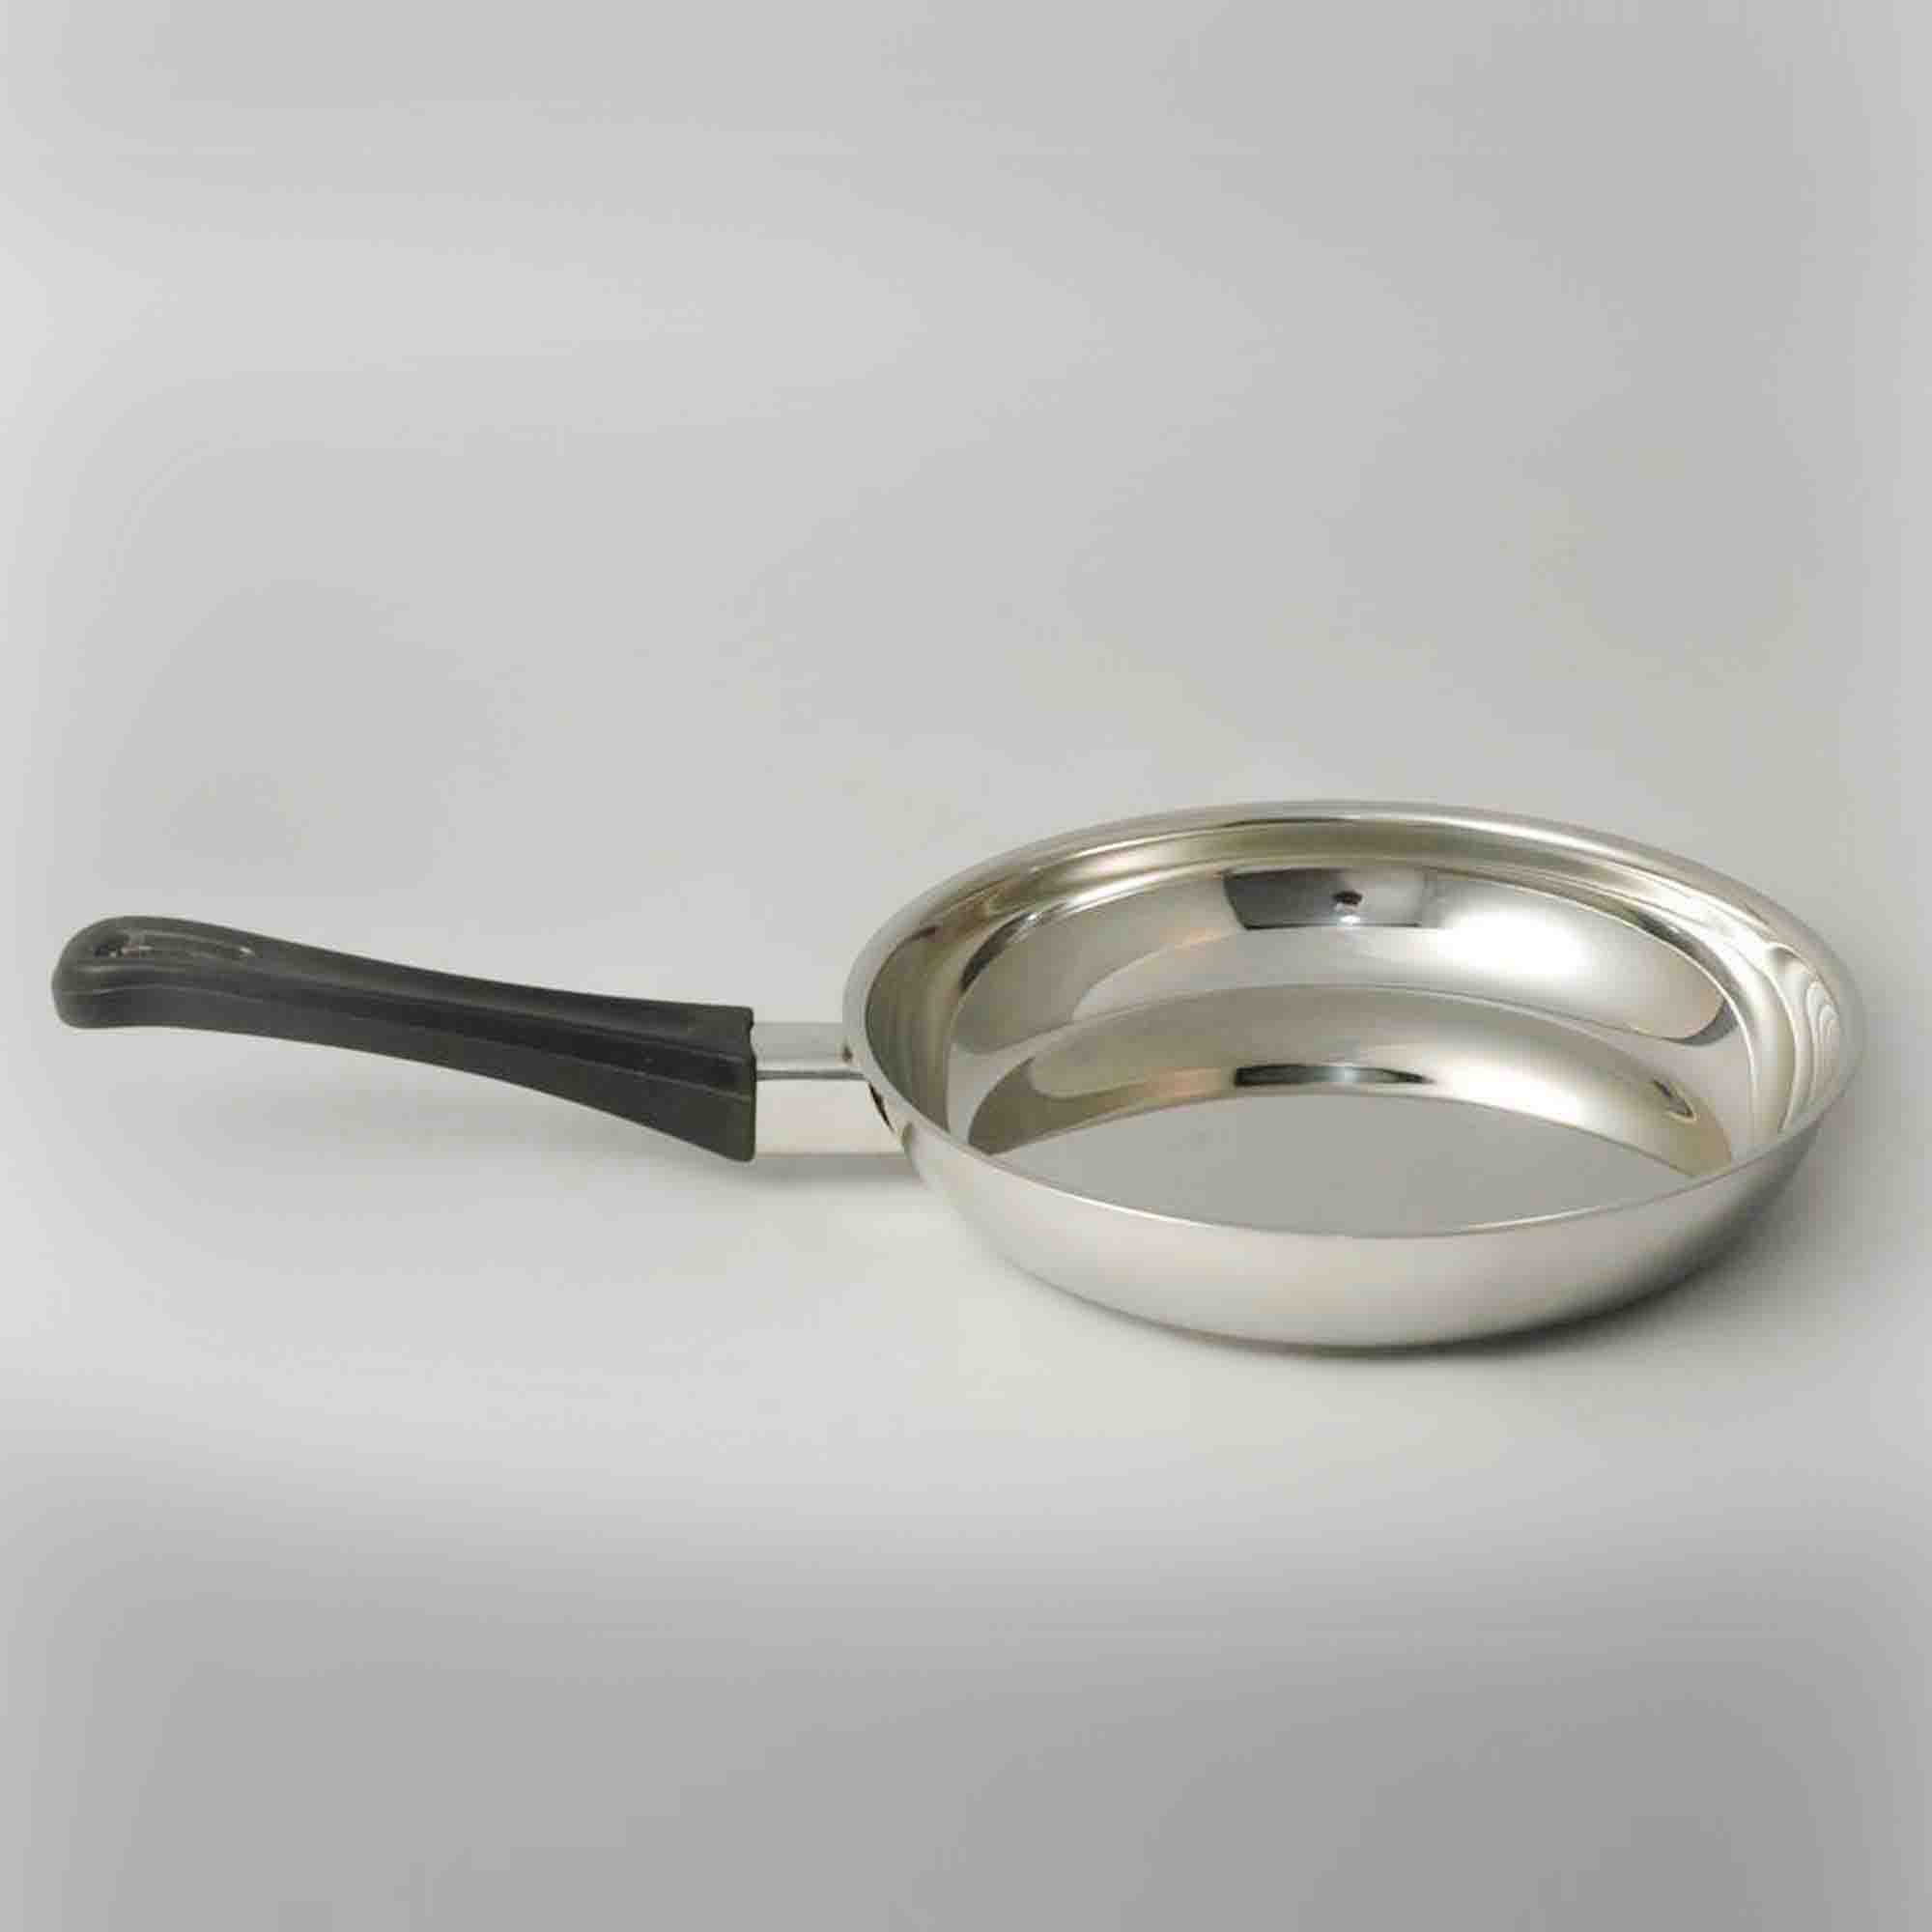 SAIL SALEM Fry Pan